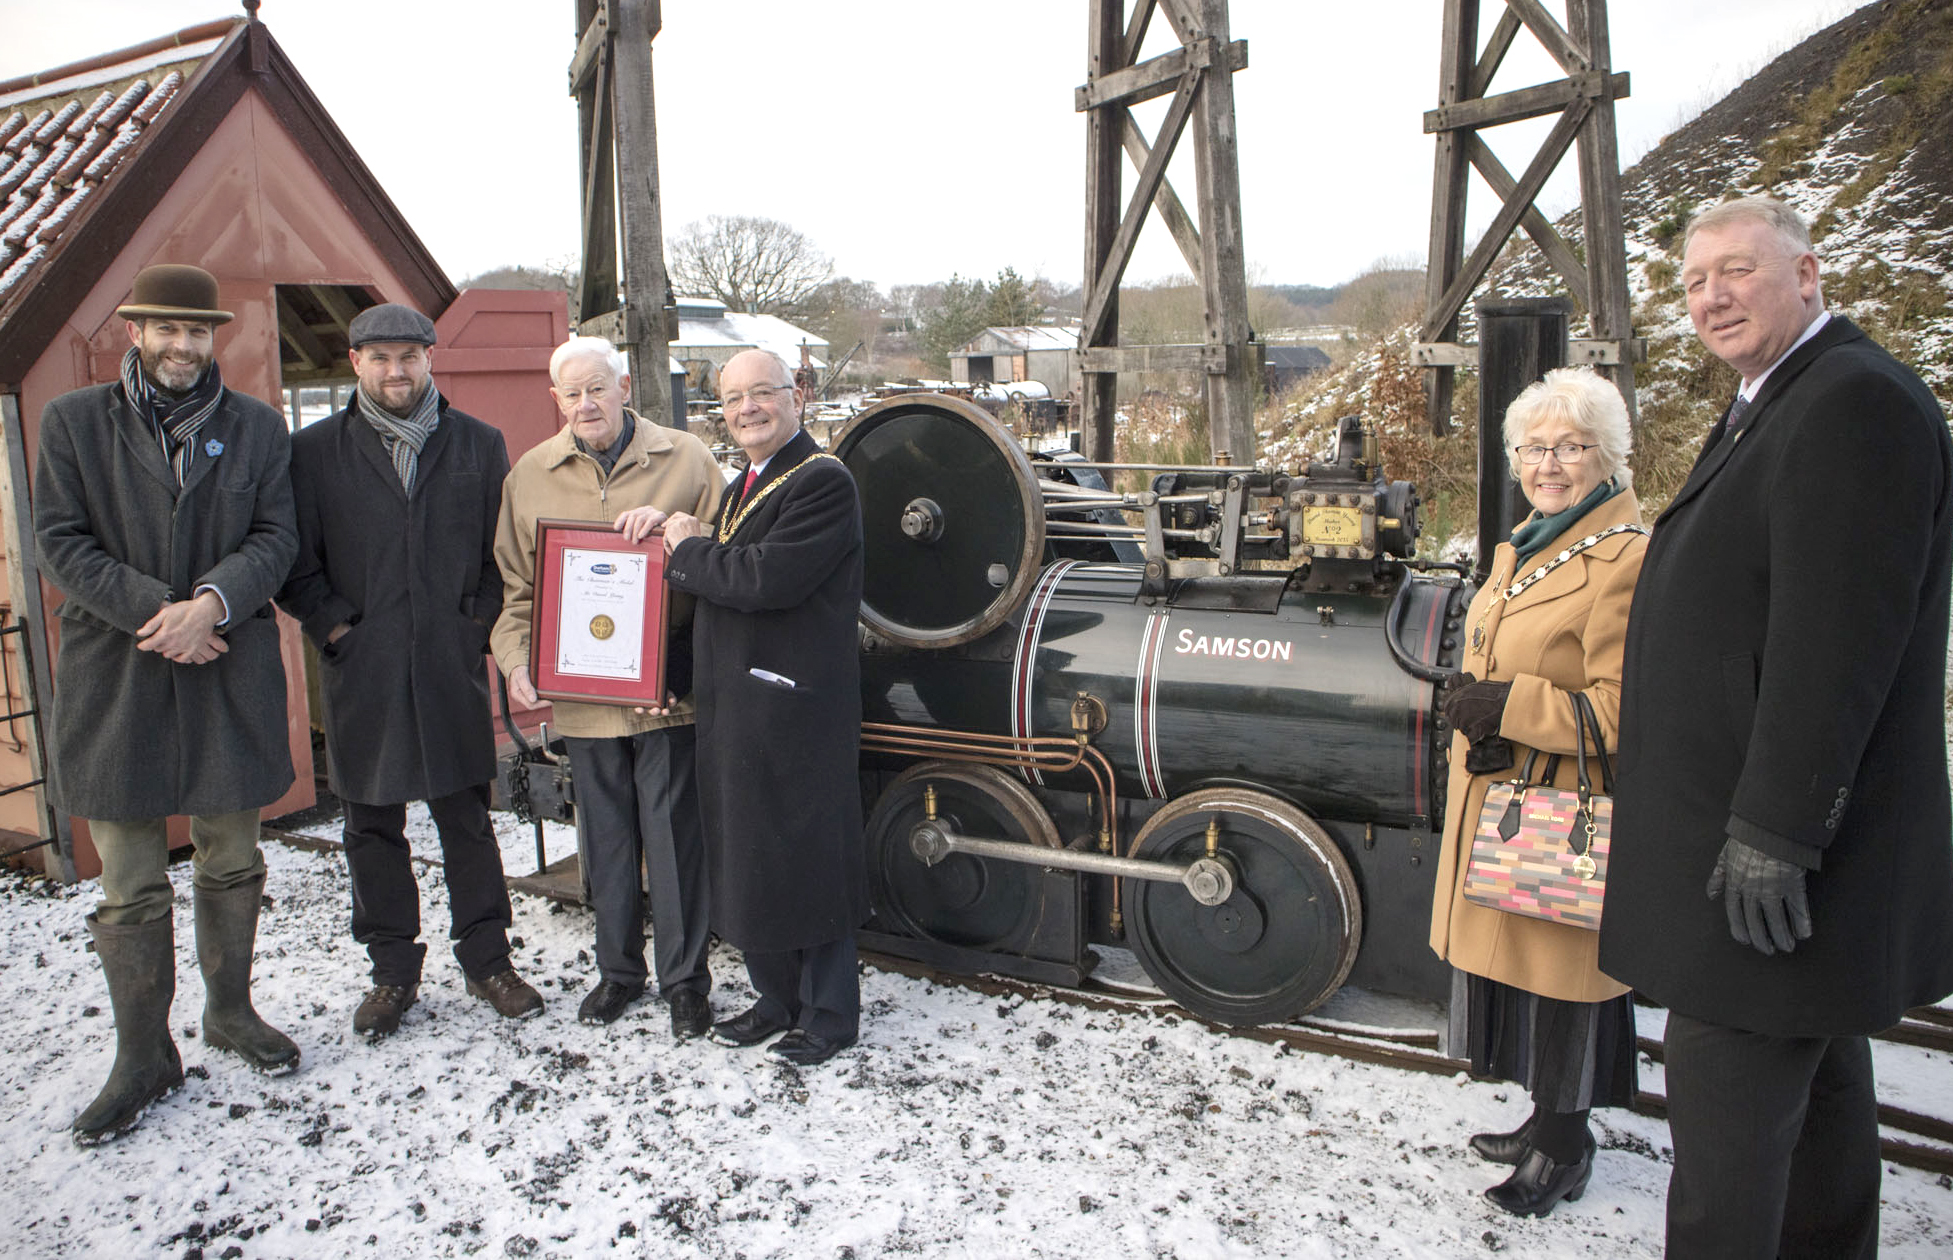 Chairman's Medal for 80 year old Beamish Volunteer